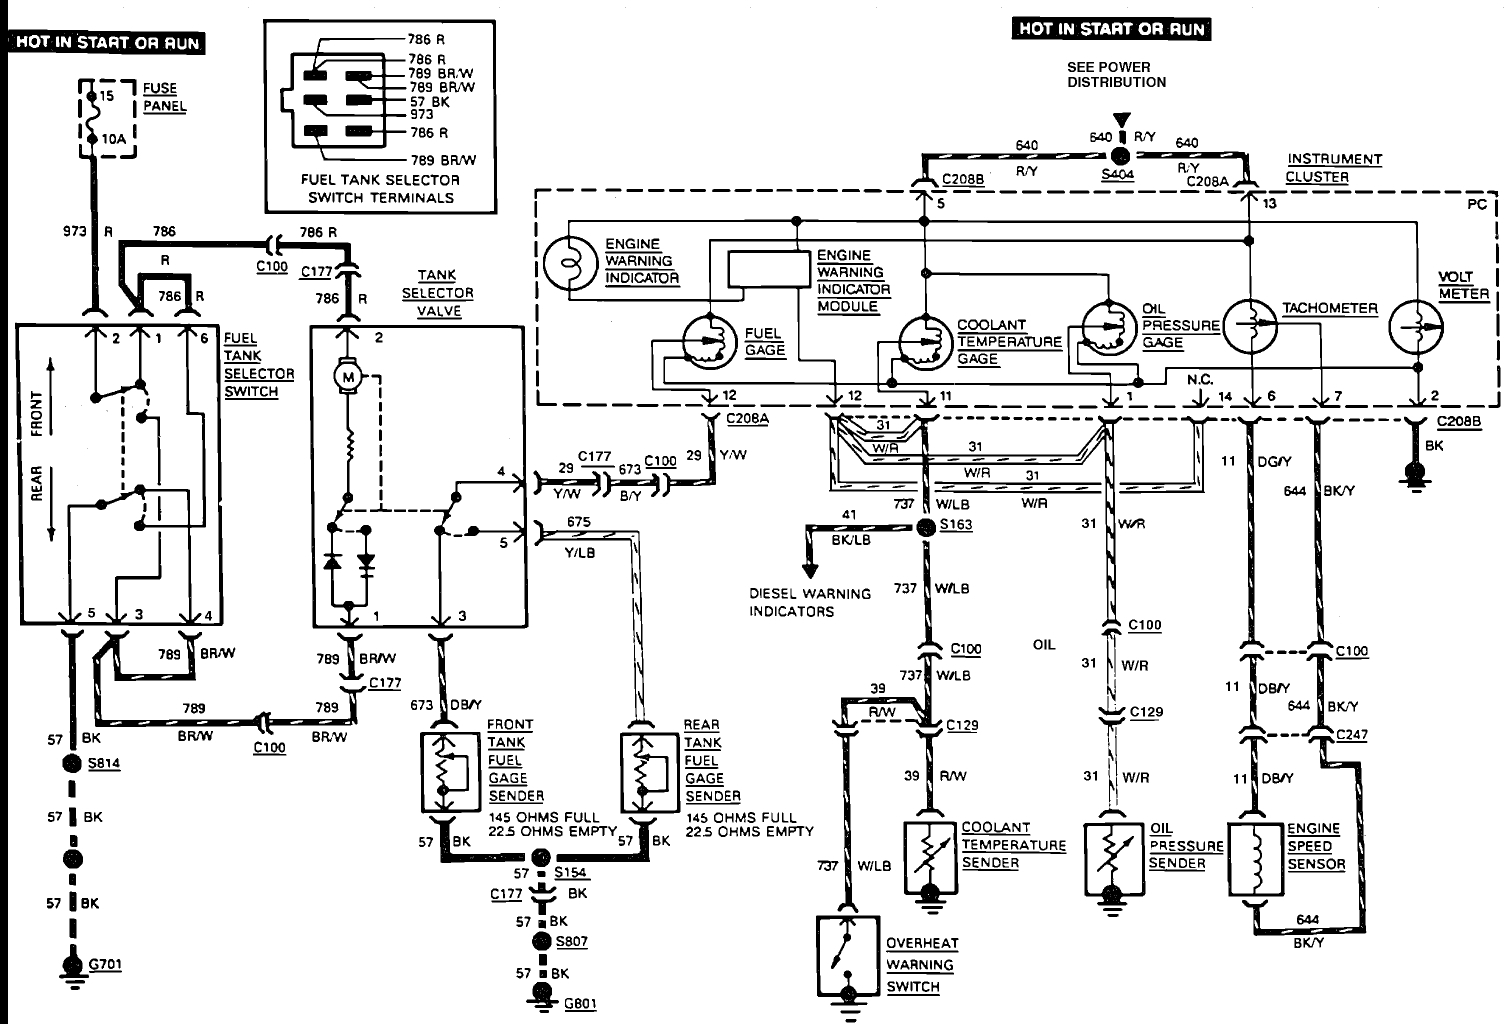 [DIAGRAM] Ford E350 Wiring Diagram Free FULL Version HD